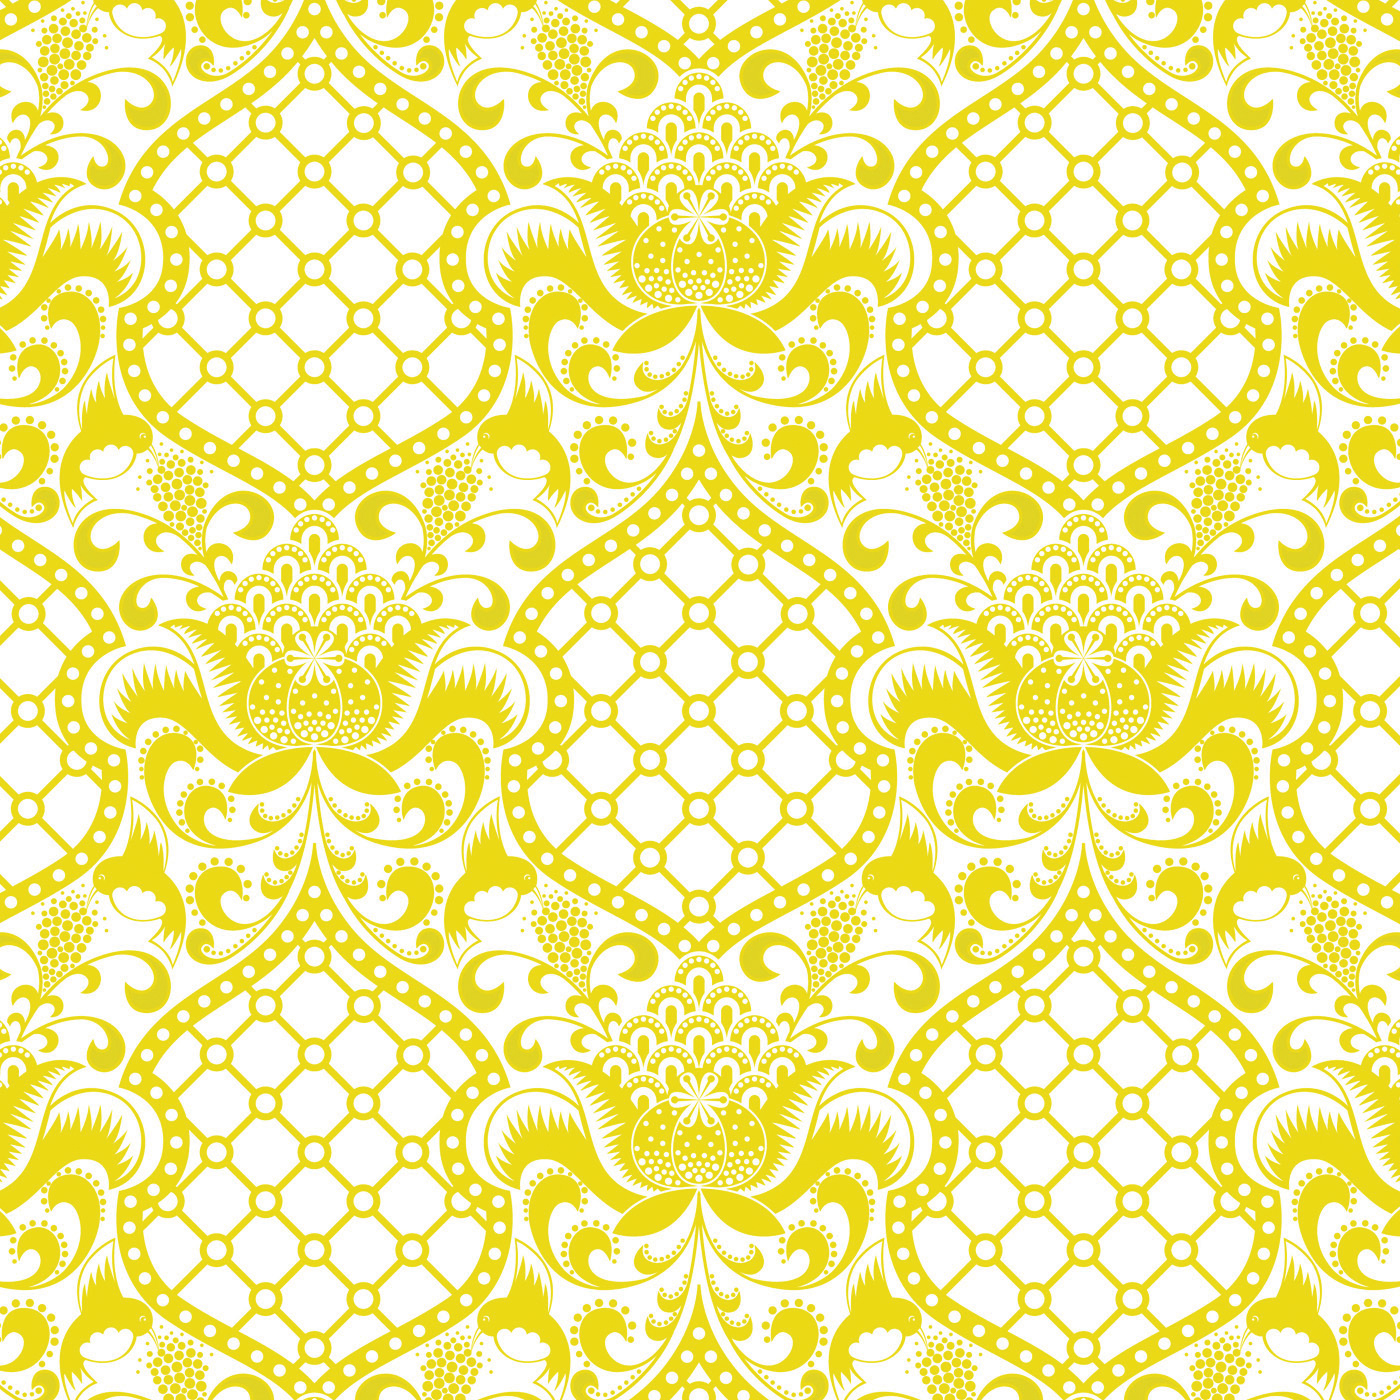 Wallpaper Brocade Yellow SHABBY CHIC HOME DECOR COUNTRY HOME DECOR 1400x1400